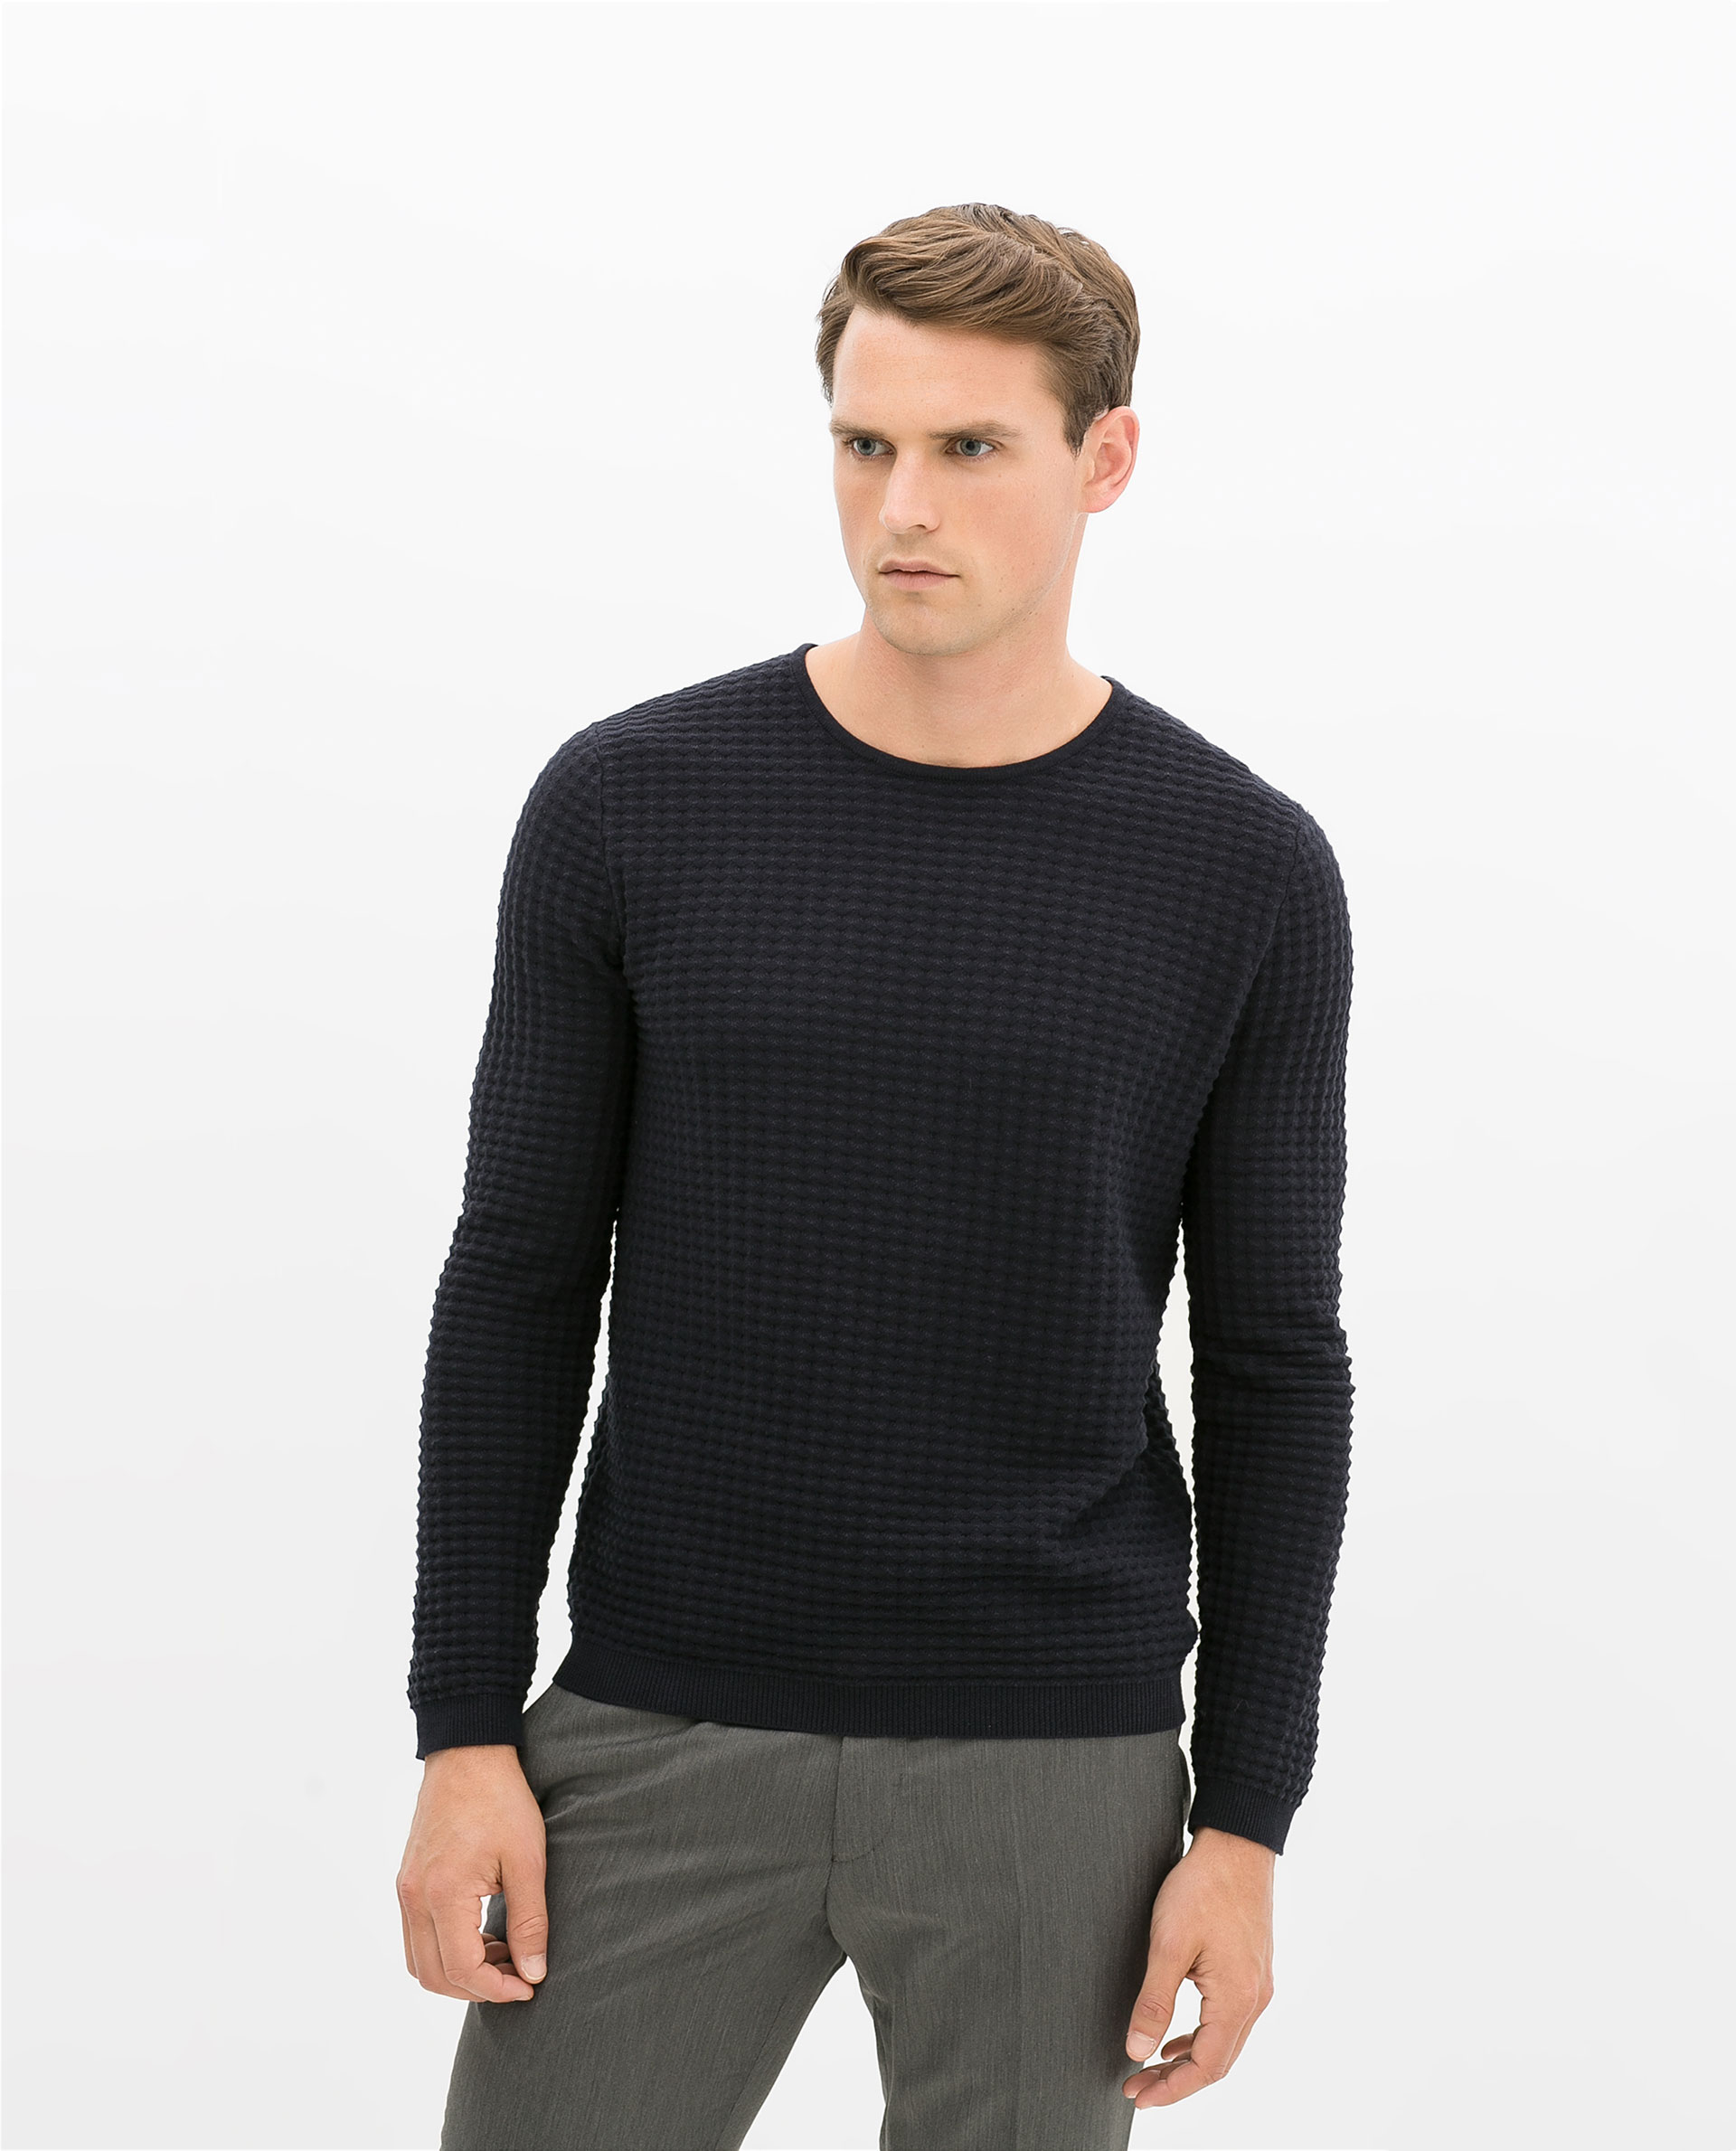 Zara Men'S Sweater 71